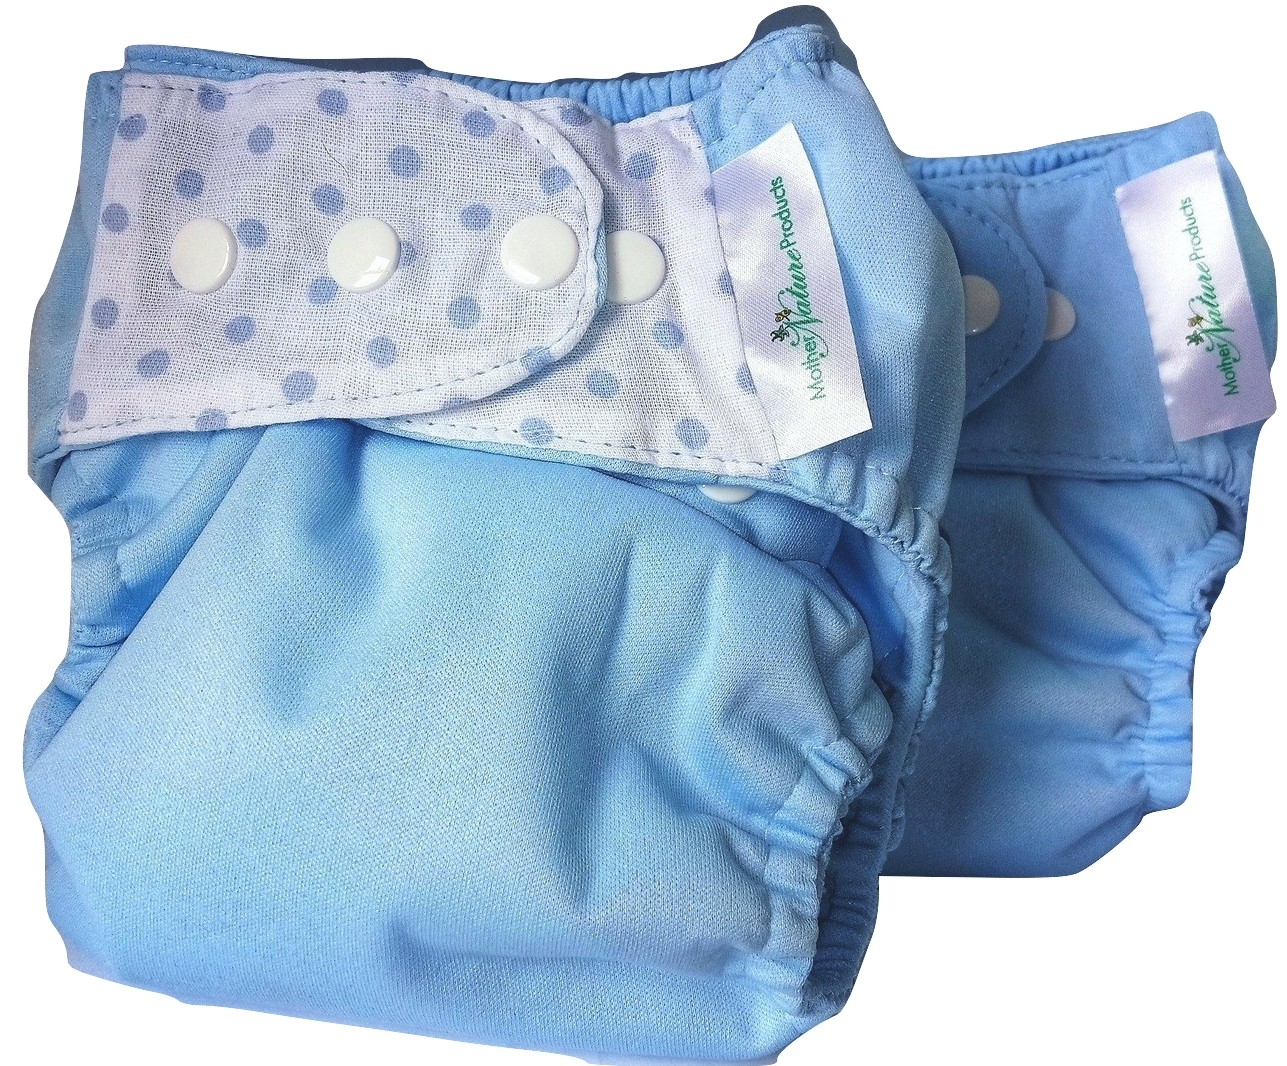 Reusable Washable Adjustable Microfiber Baby Pocket Cloth Nappy Nappies with 1 Insert Liner Booster White Teddy//Giraffe//Lion Nappy